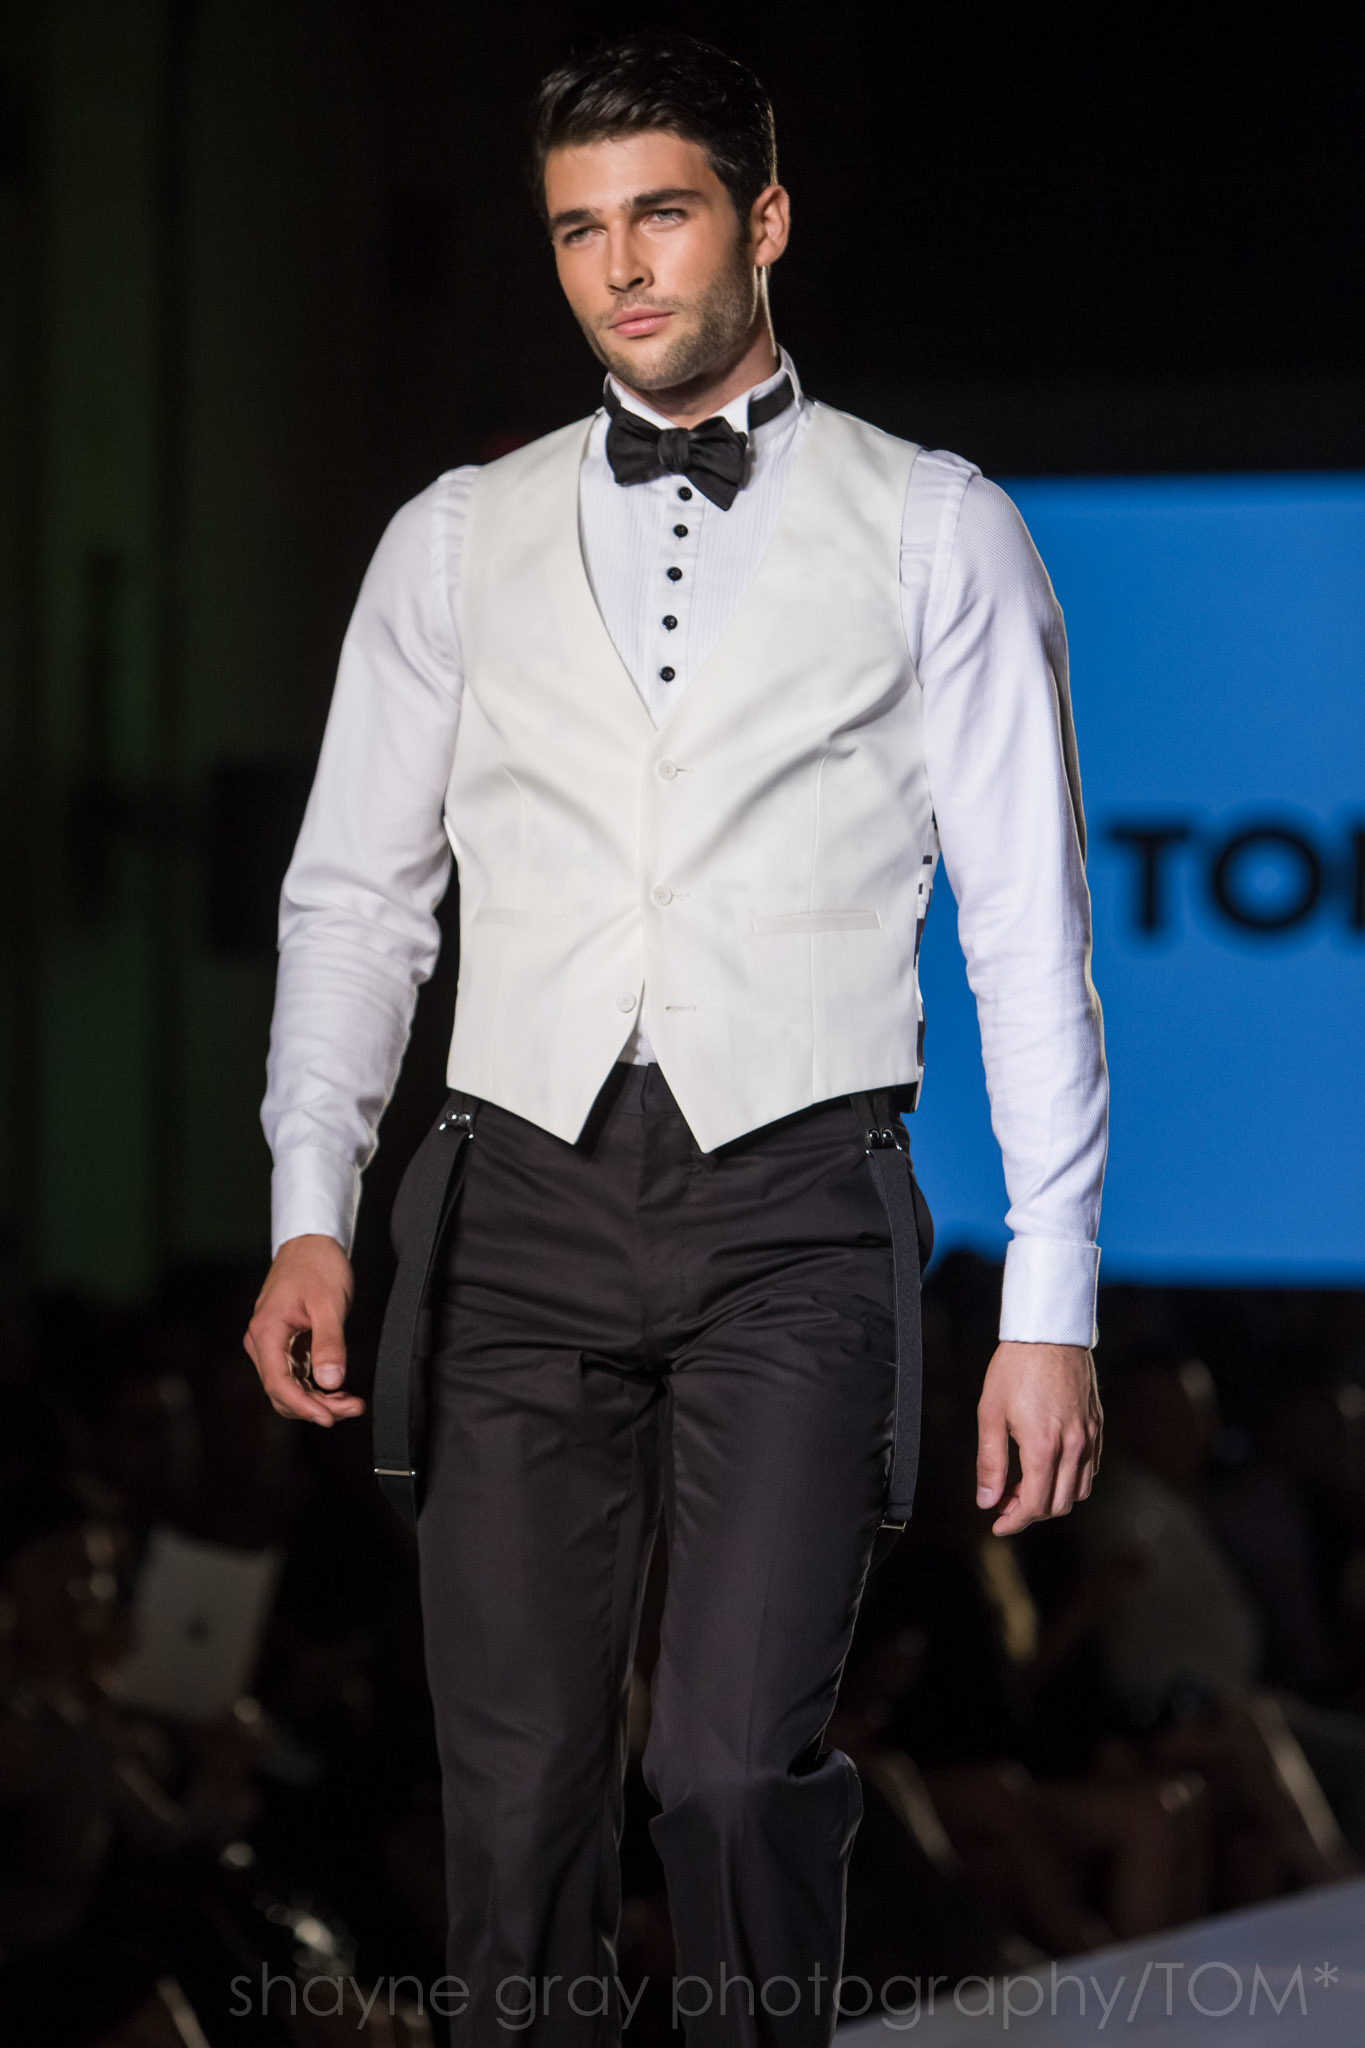 Shayne-Gray-Toronto-men's-fashion_week-TOM-christopher-bates-7282.jpg